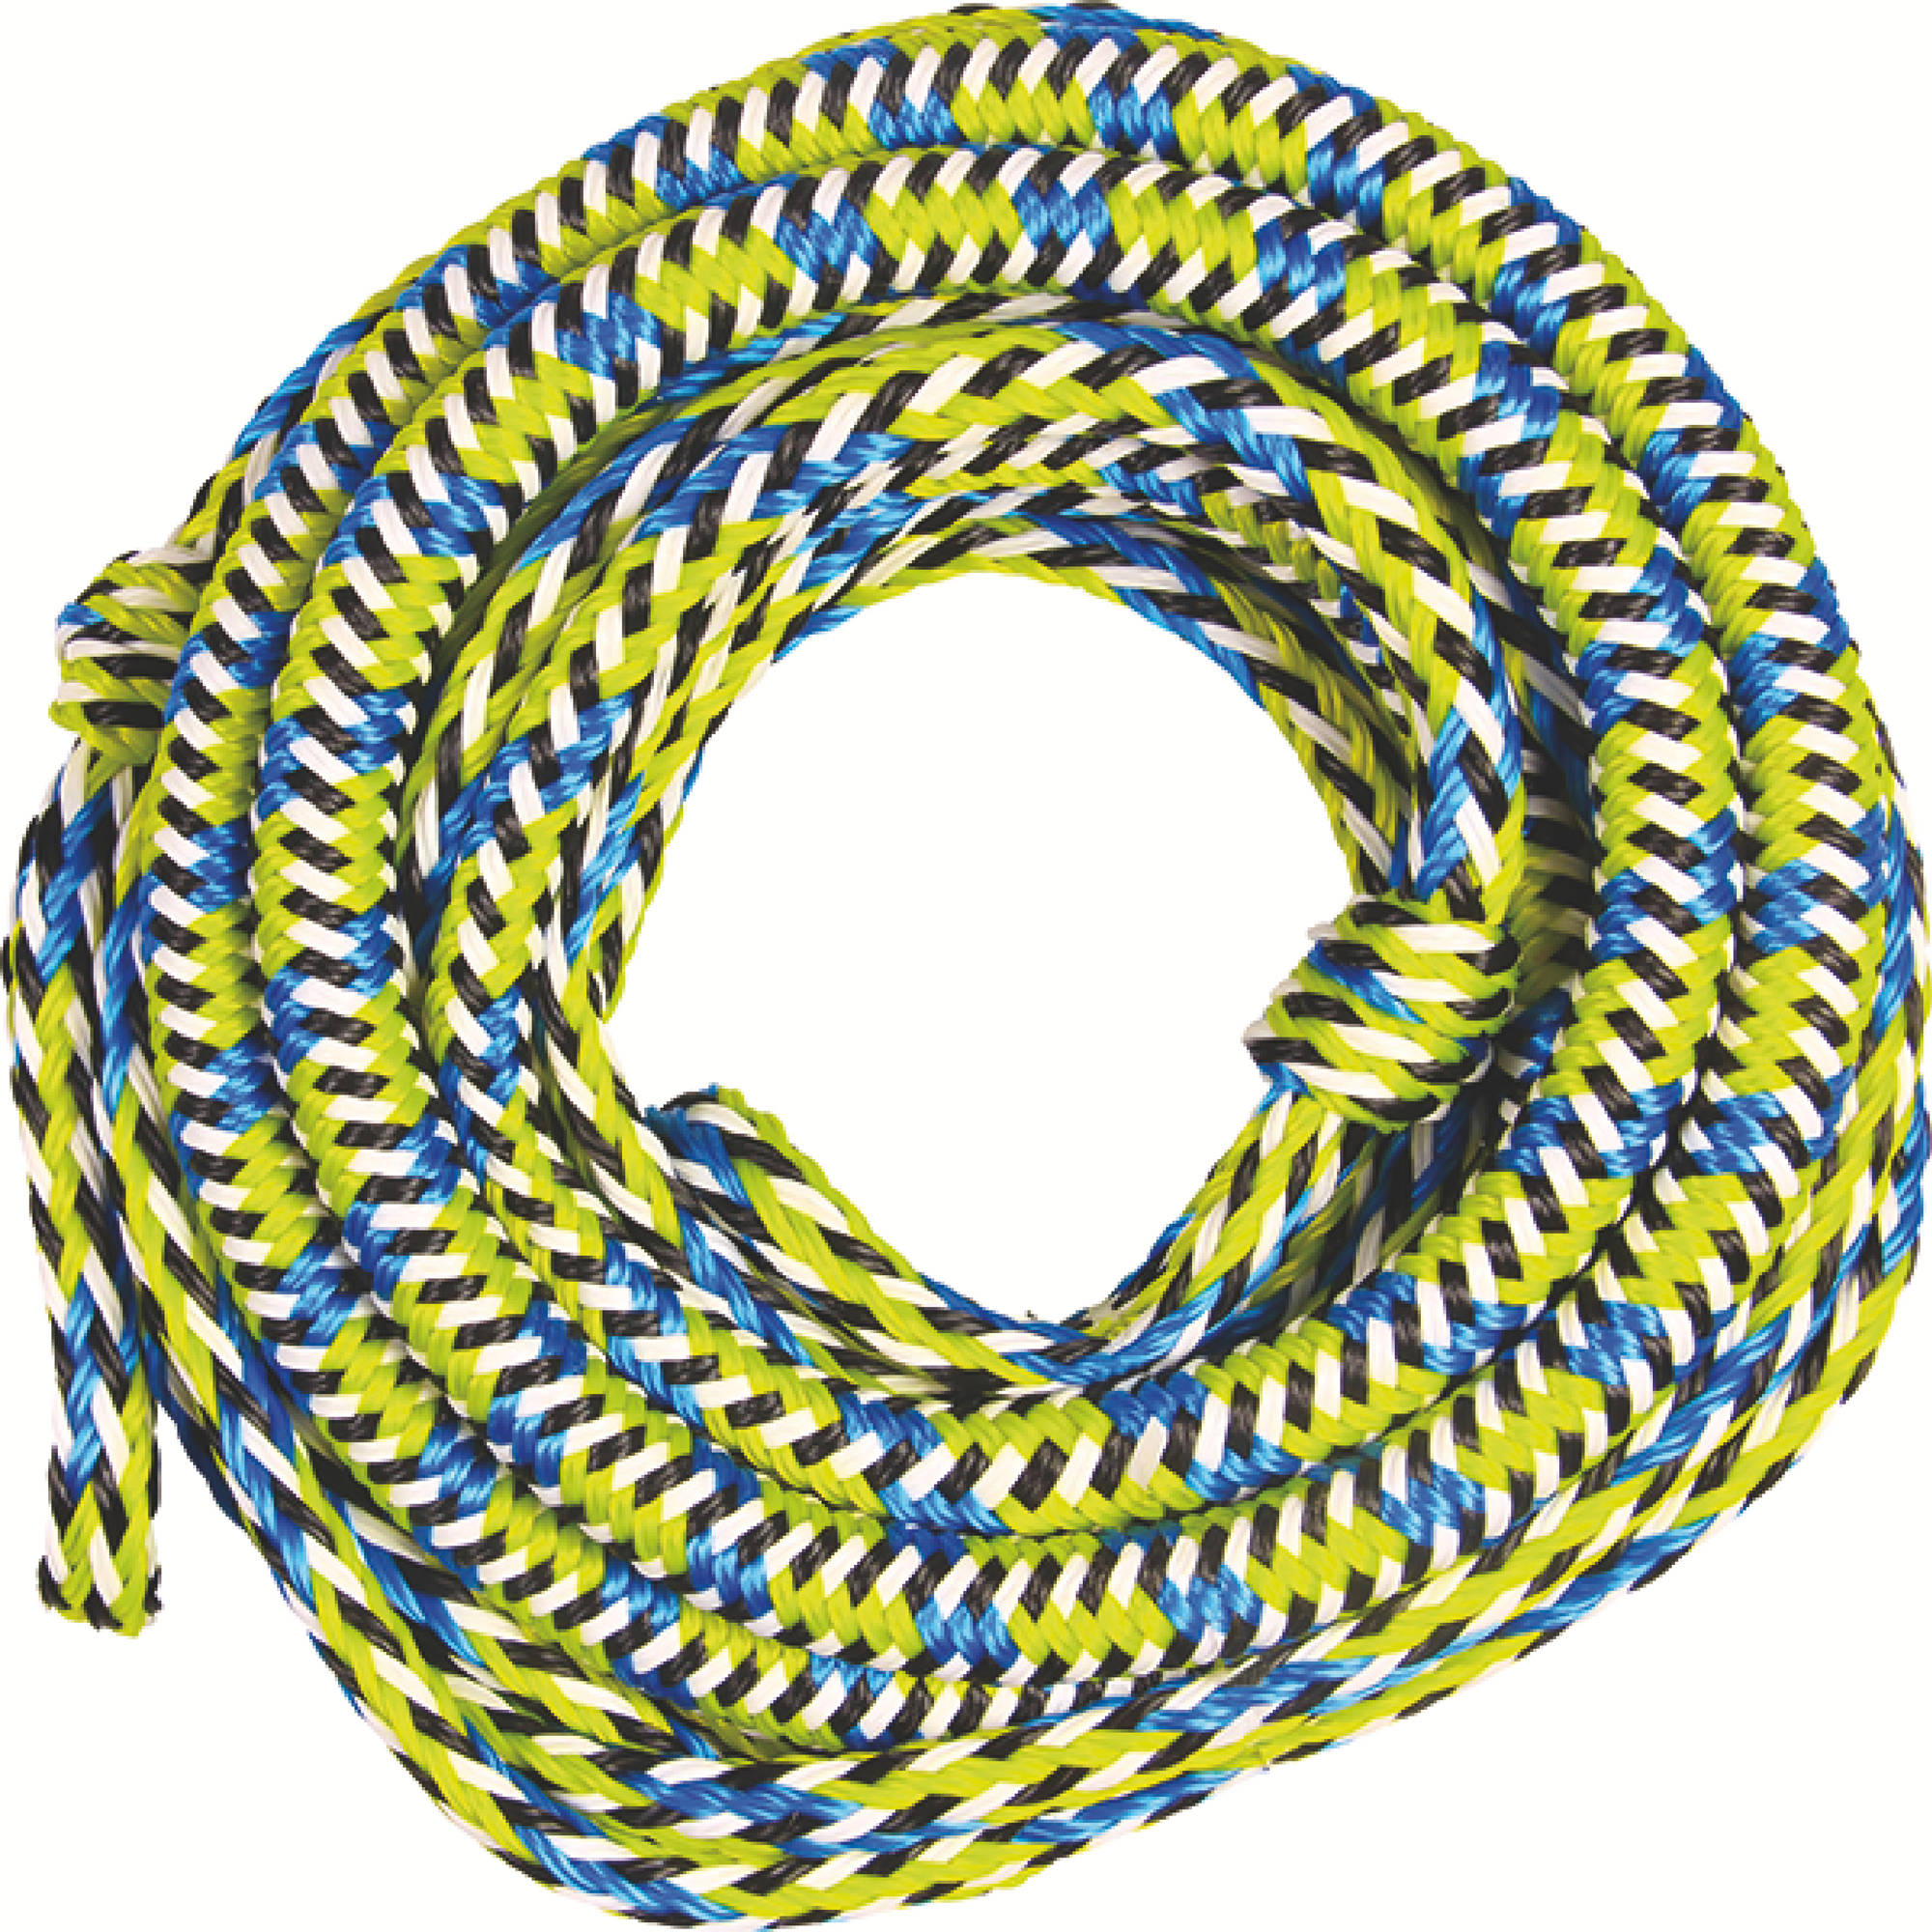 Jobe 211917023 1-Section 49' Bungee Rope